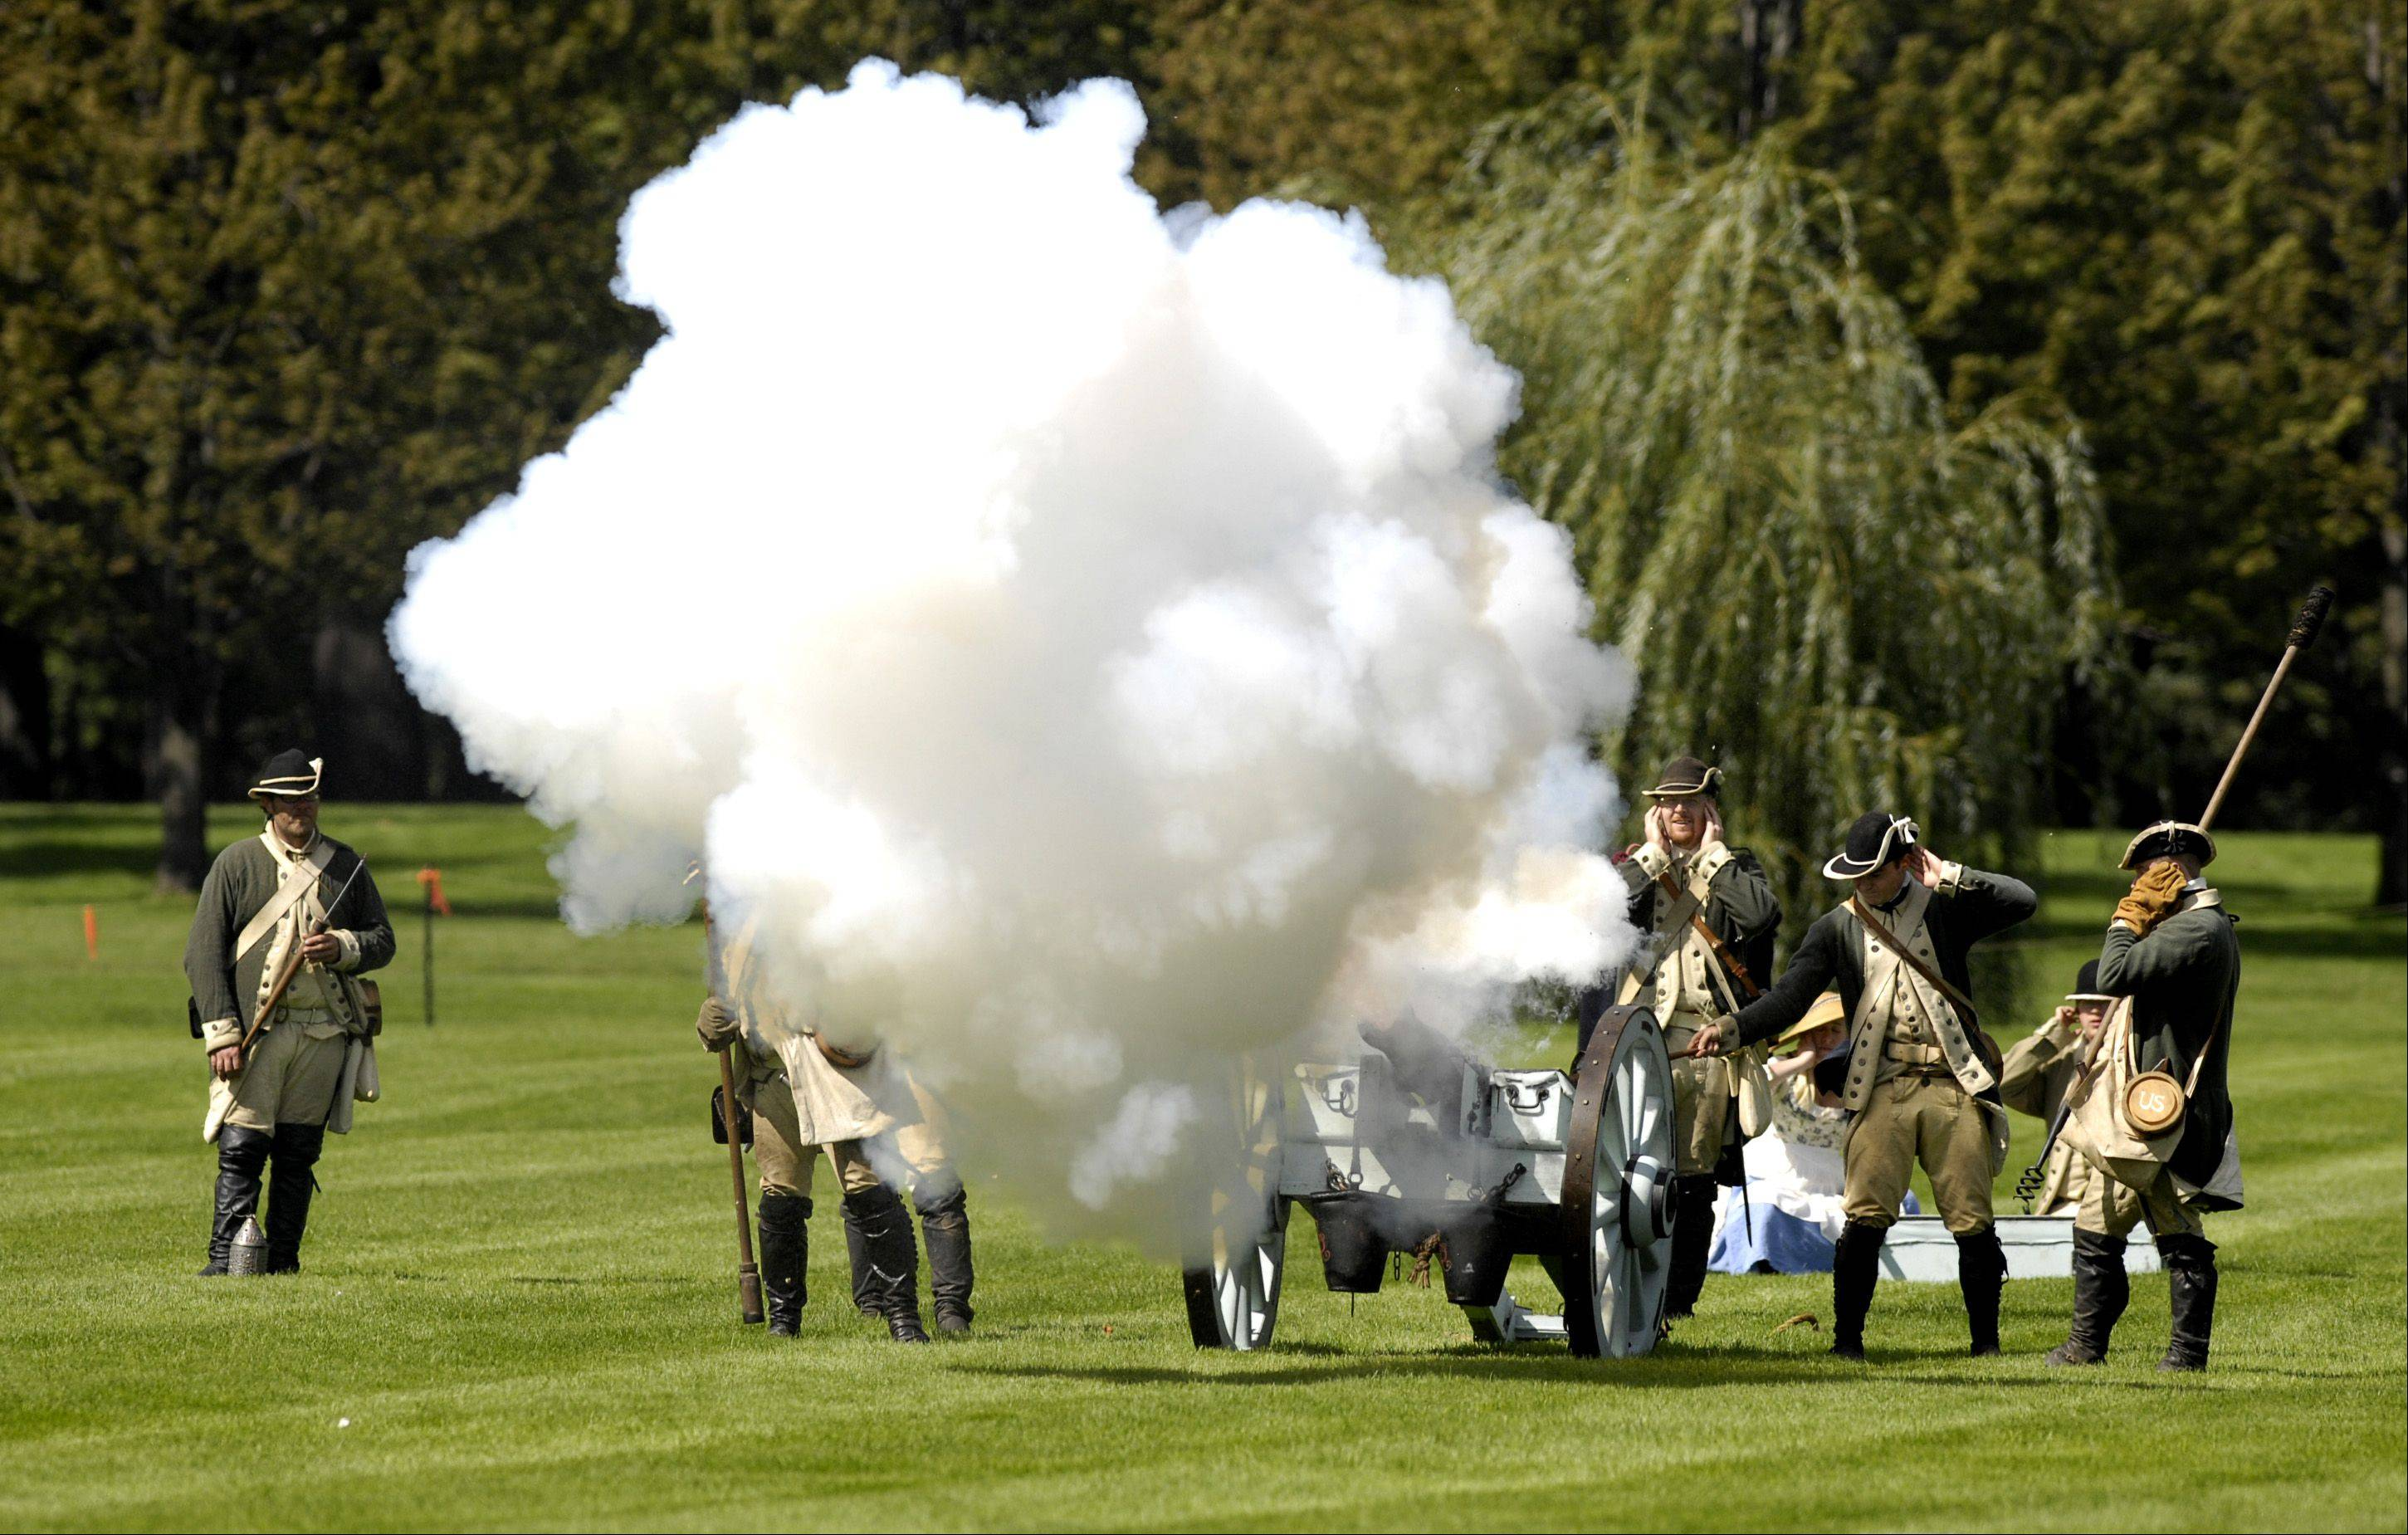 The Continental Army fires a canon during a Revolutionary War battle re-enactment at Cantigny Park in Wheaton, Sunday.